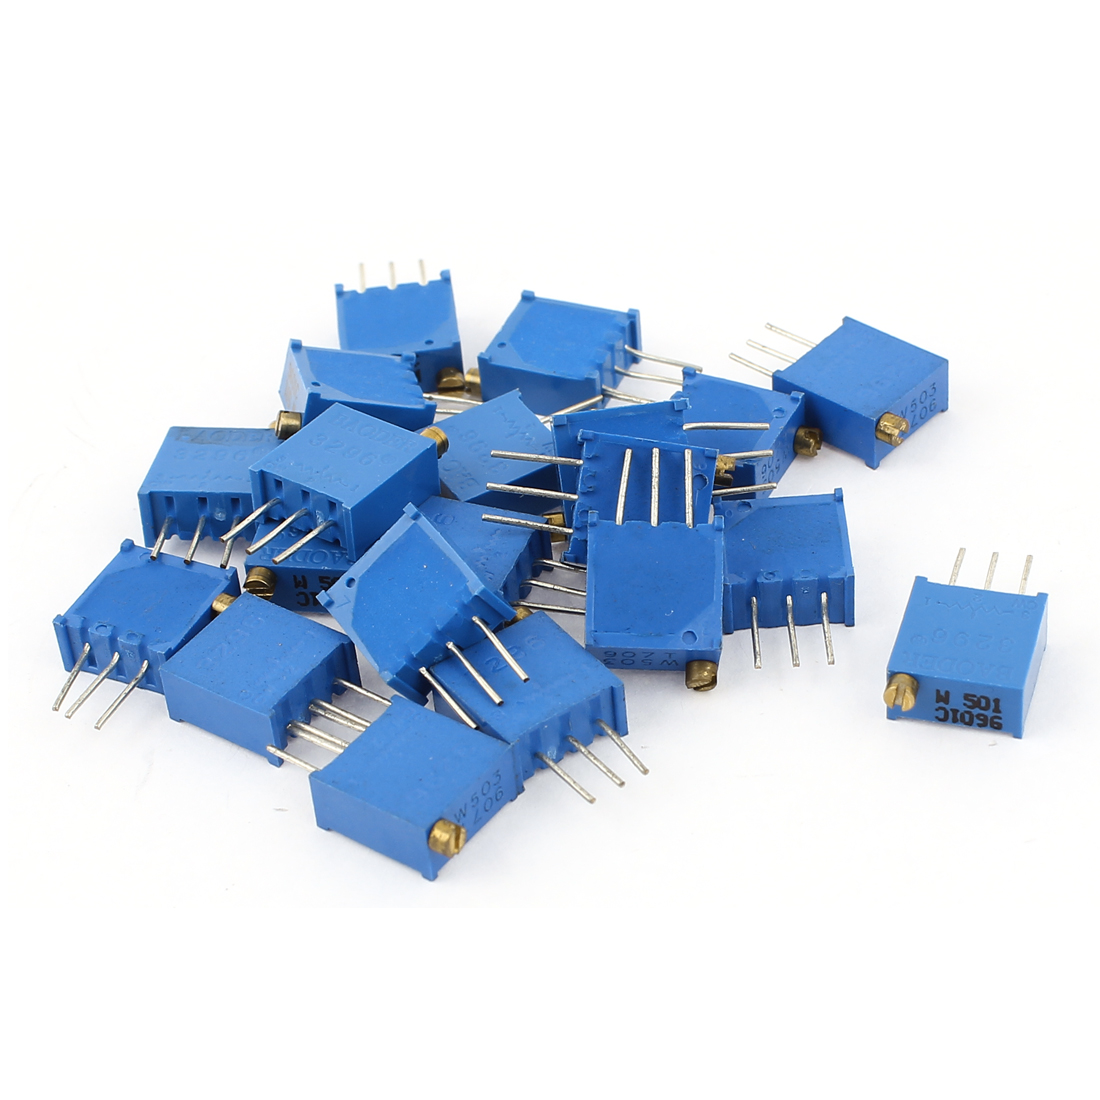 20Pcs 3296W-501 3296W-503 Resistor Trim Pot Potentiometer Trimmer